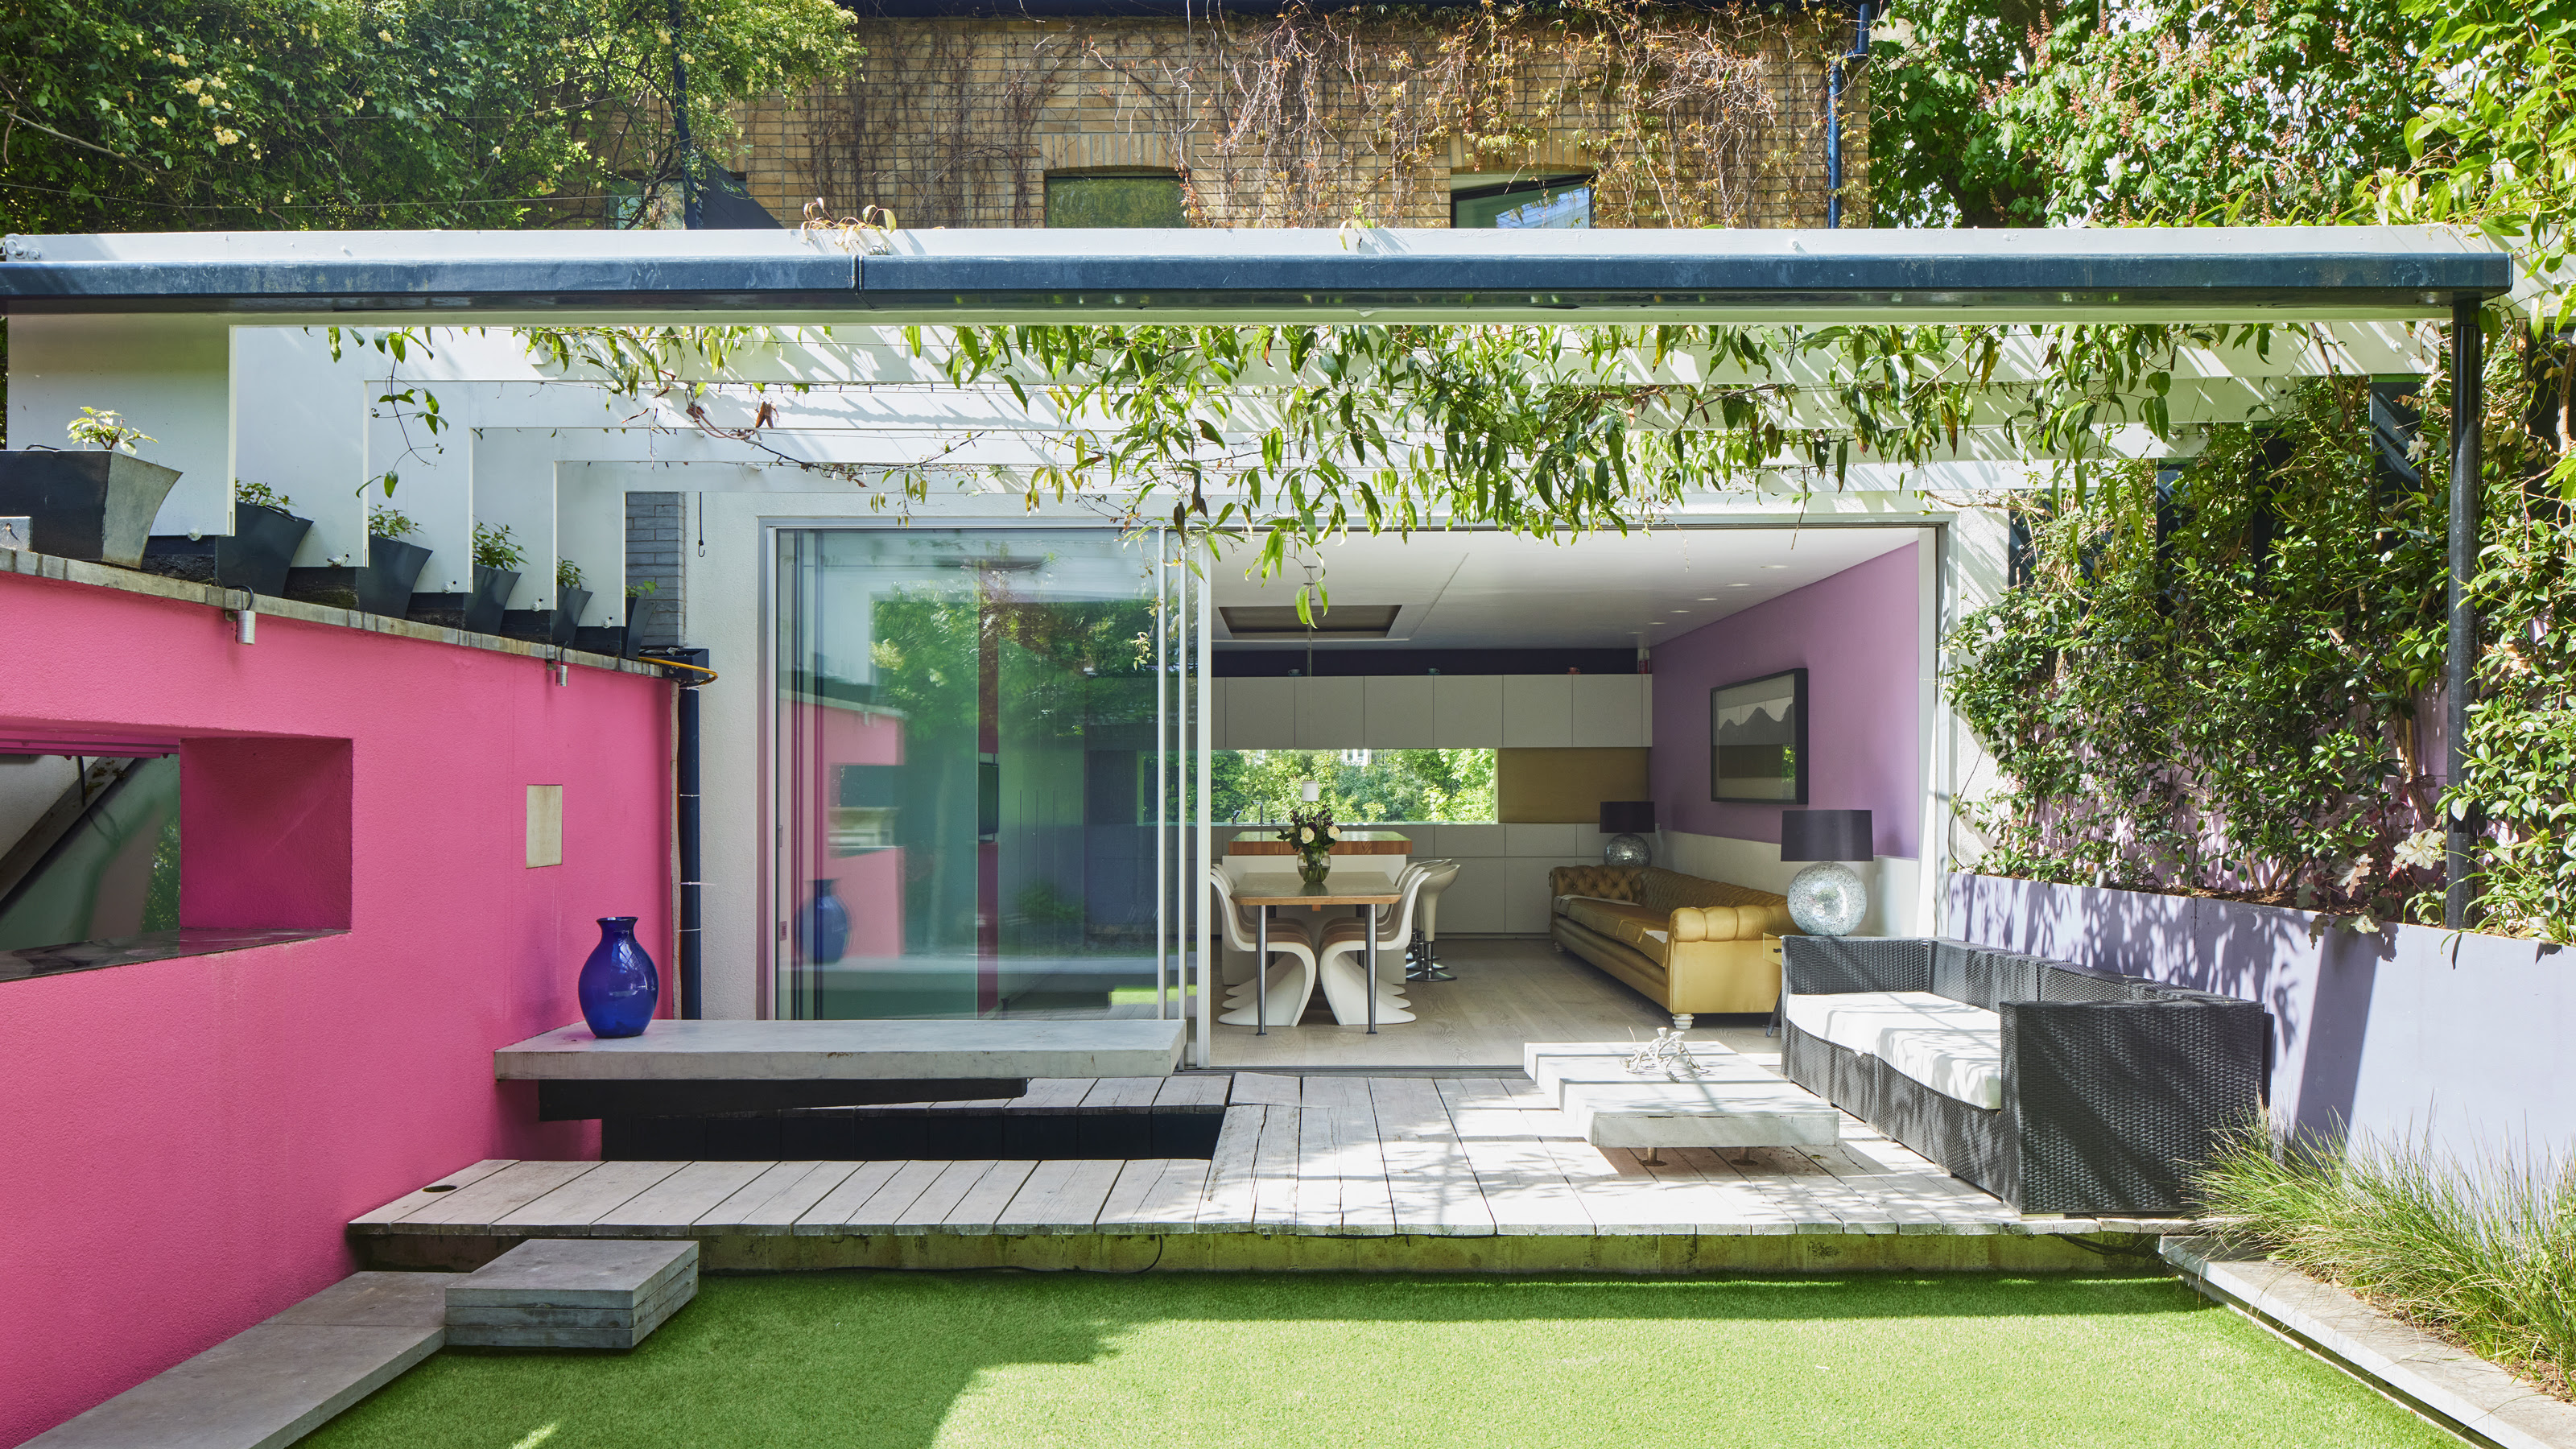 This modern Kensington mews shows how a bold color scheme should be done